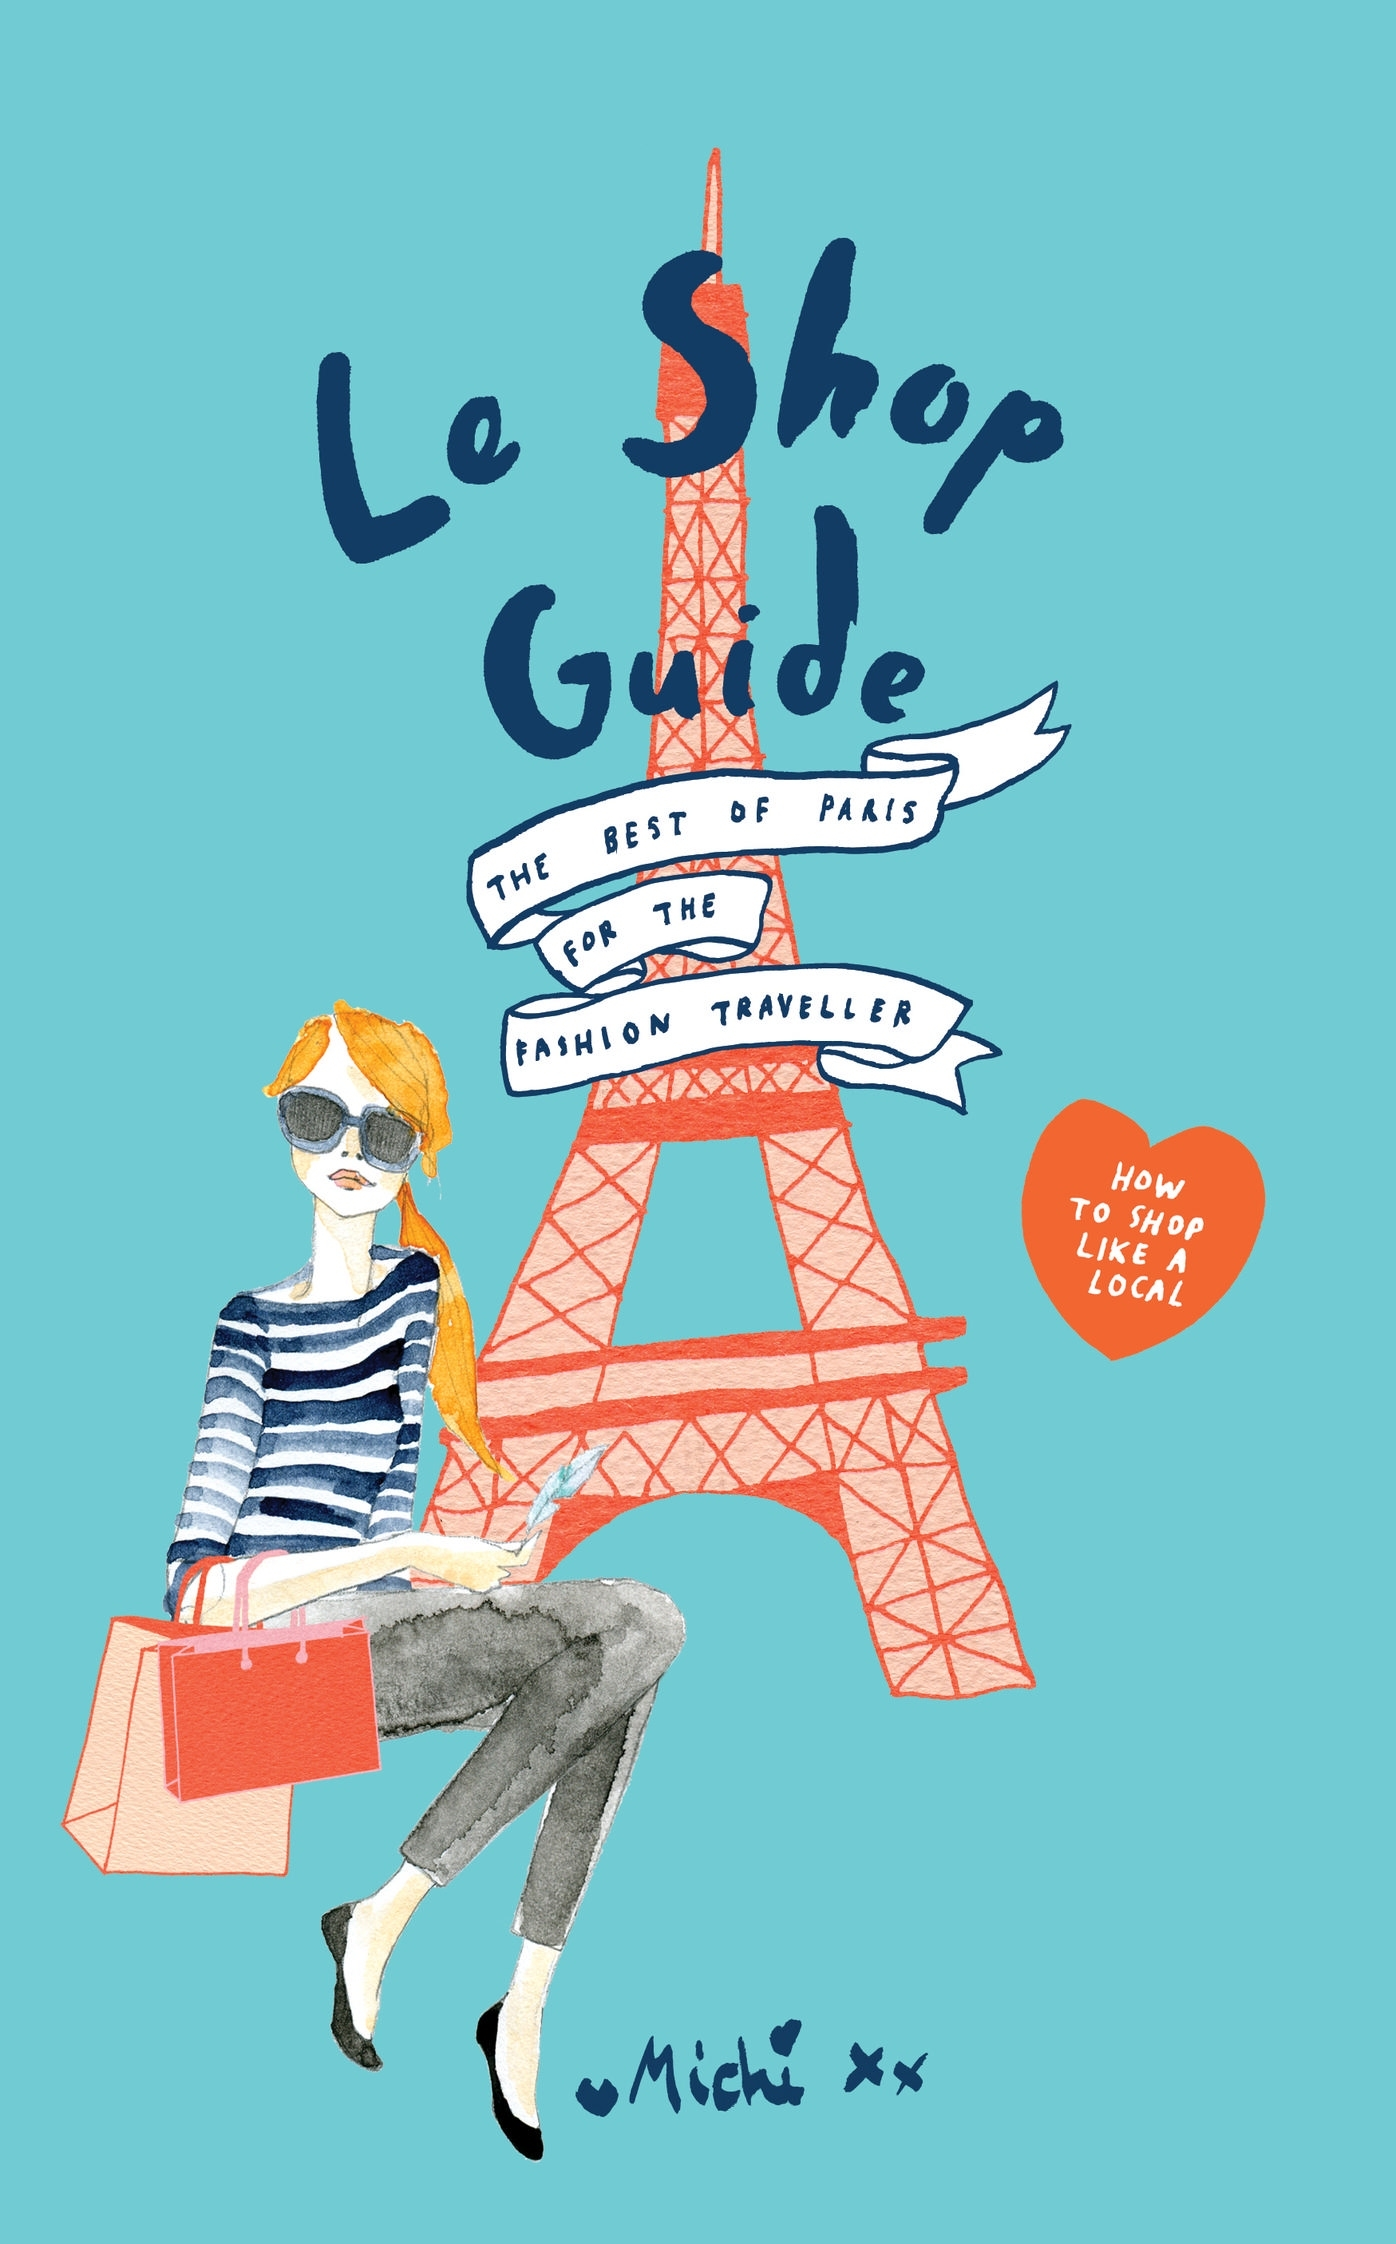 Michi Girl - Le Shop Guide - Paris Guide - off the beaten track - My French Life